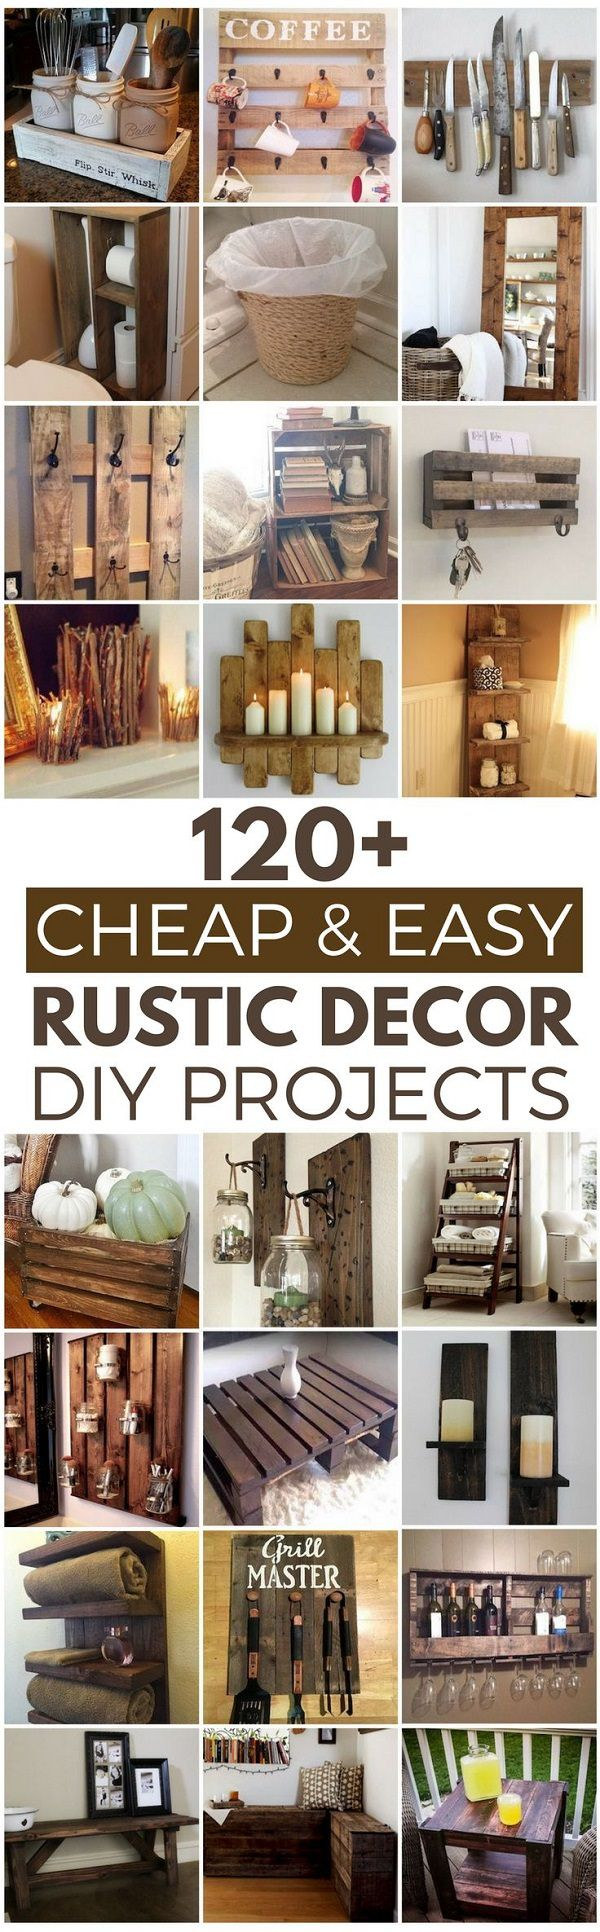 25 Best Ideas About Rustic Cottage On Pinterest Rustic